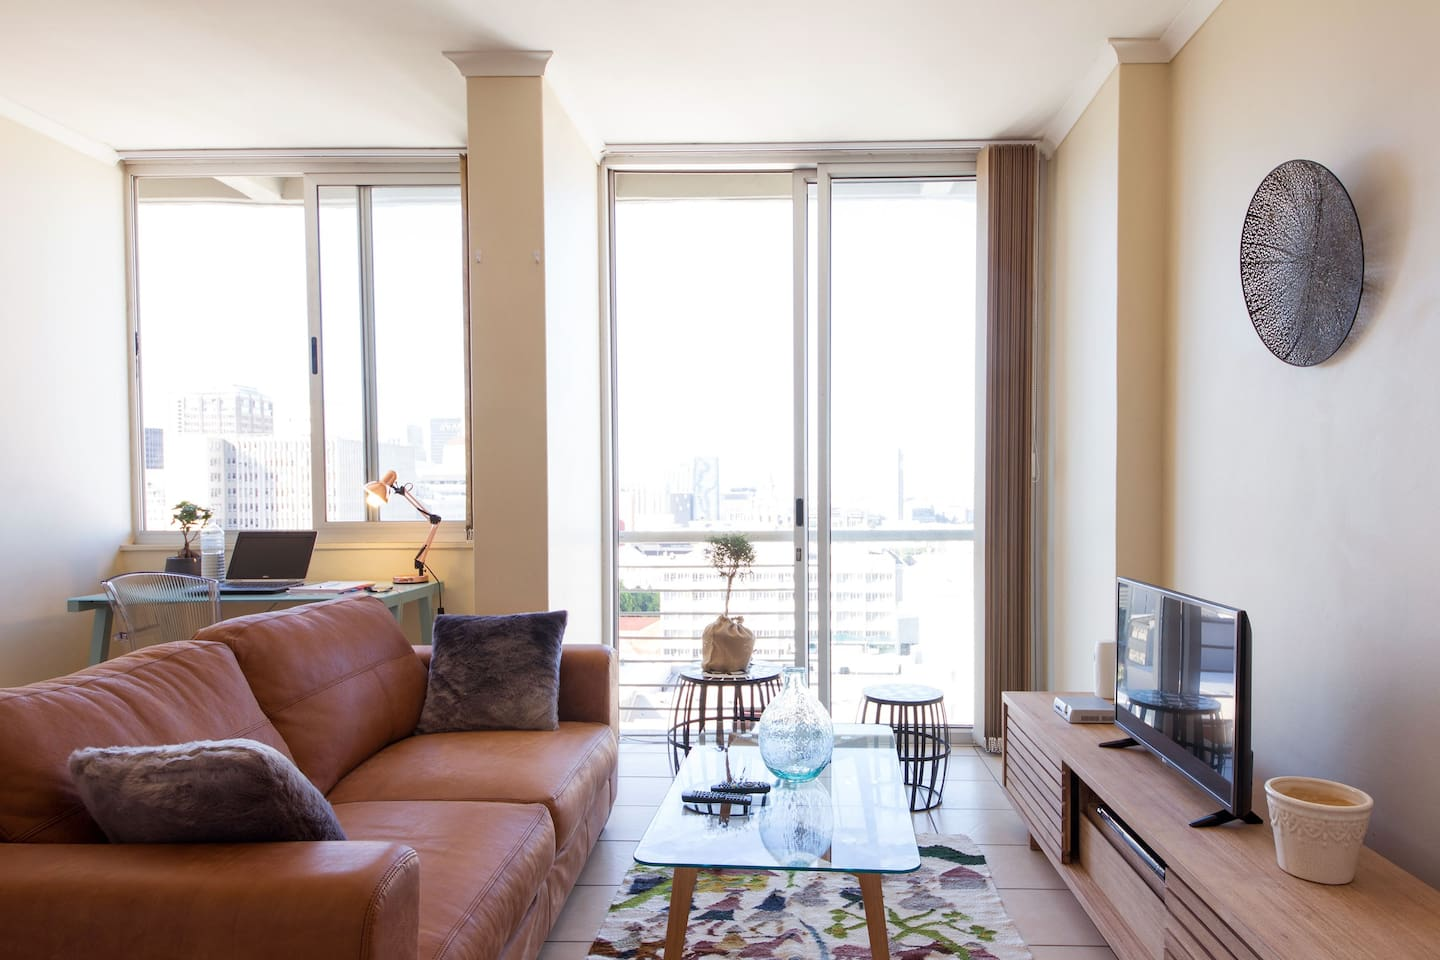 Comfortable lounge including a lovely leather couch with beautiful views of the Mother city day and night.